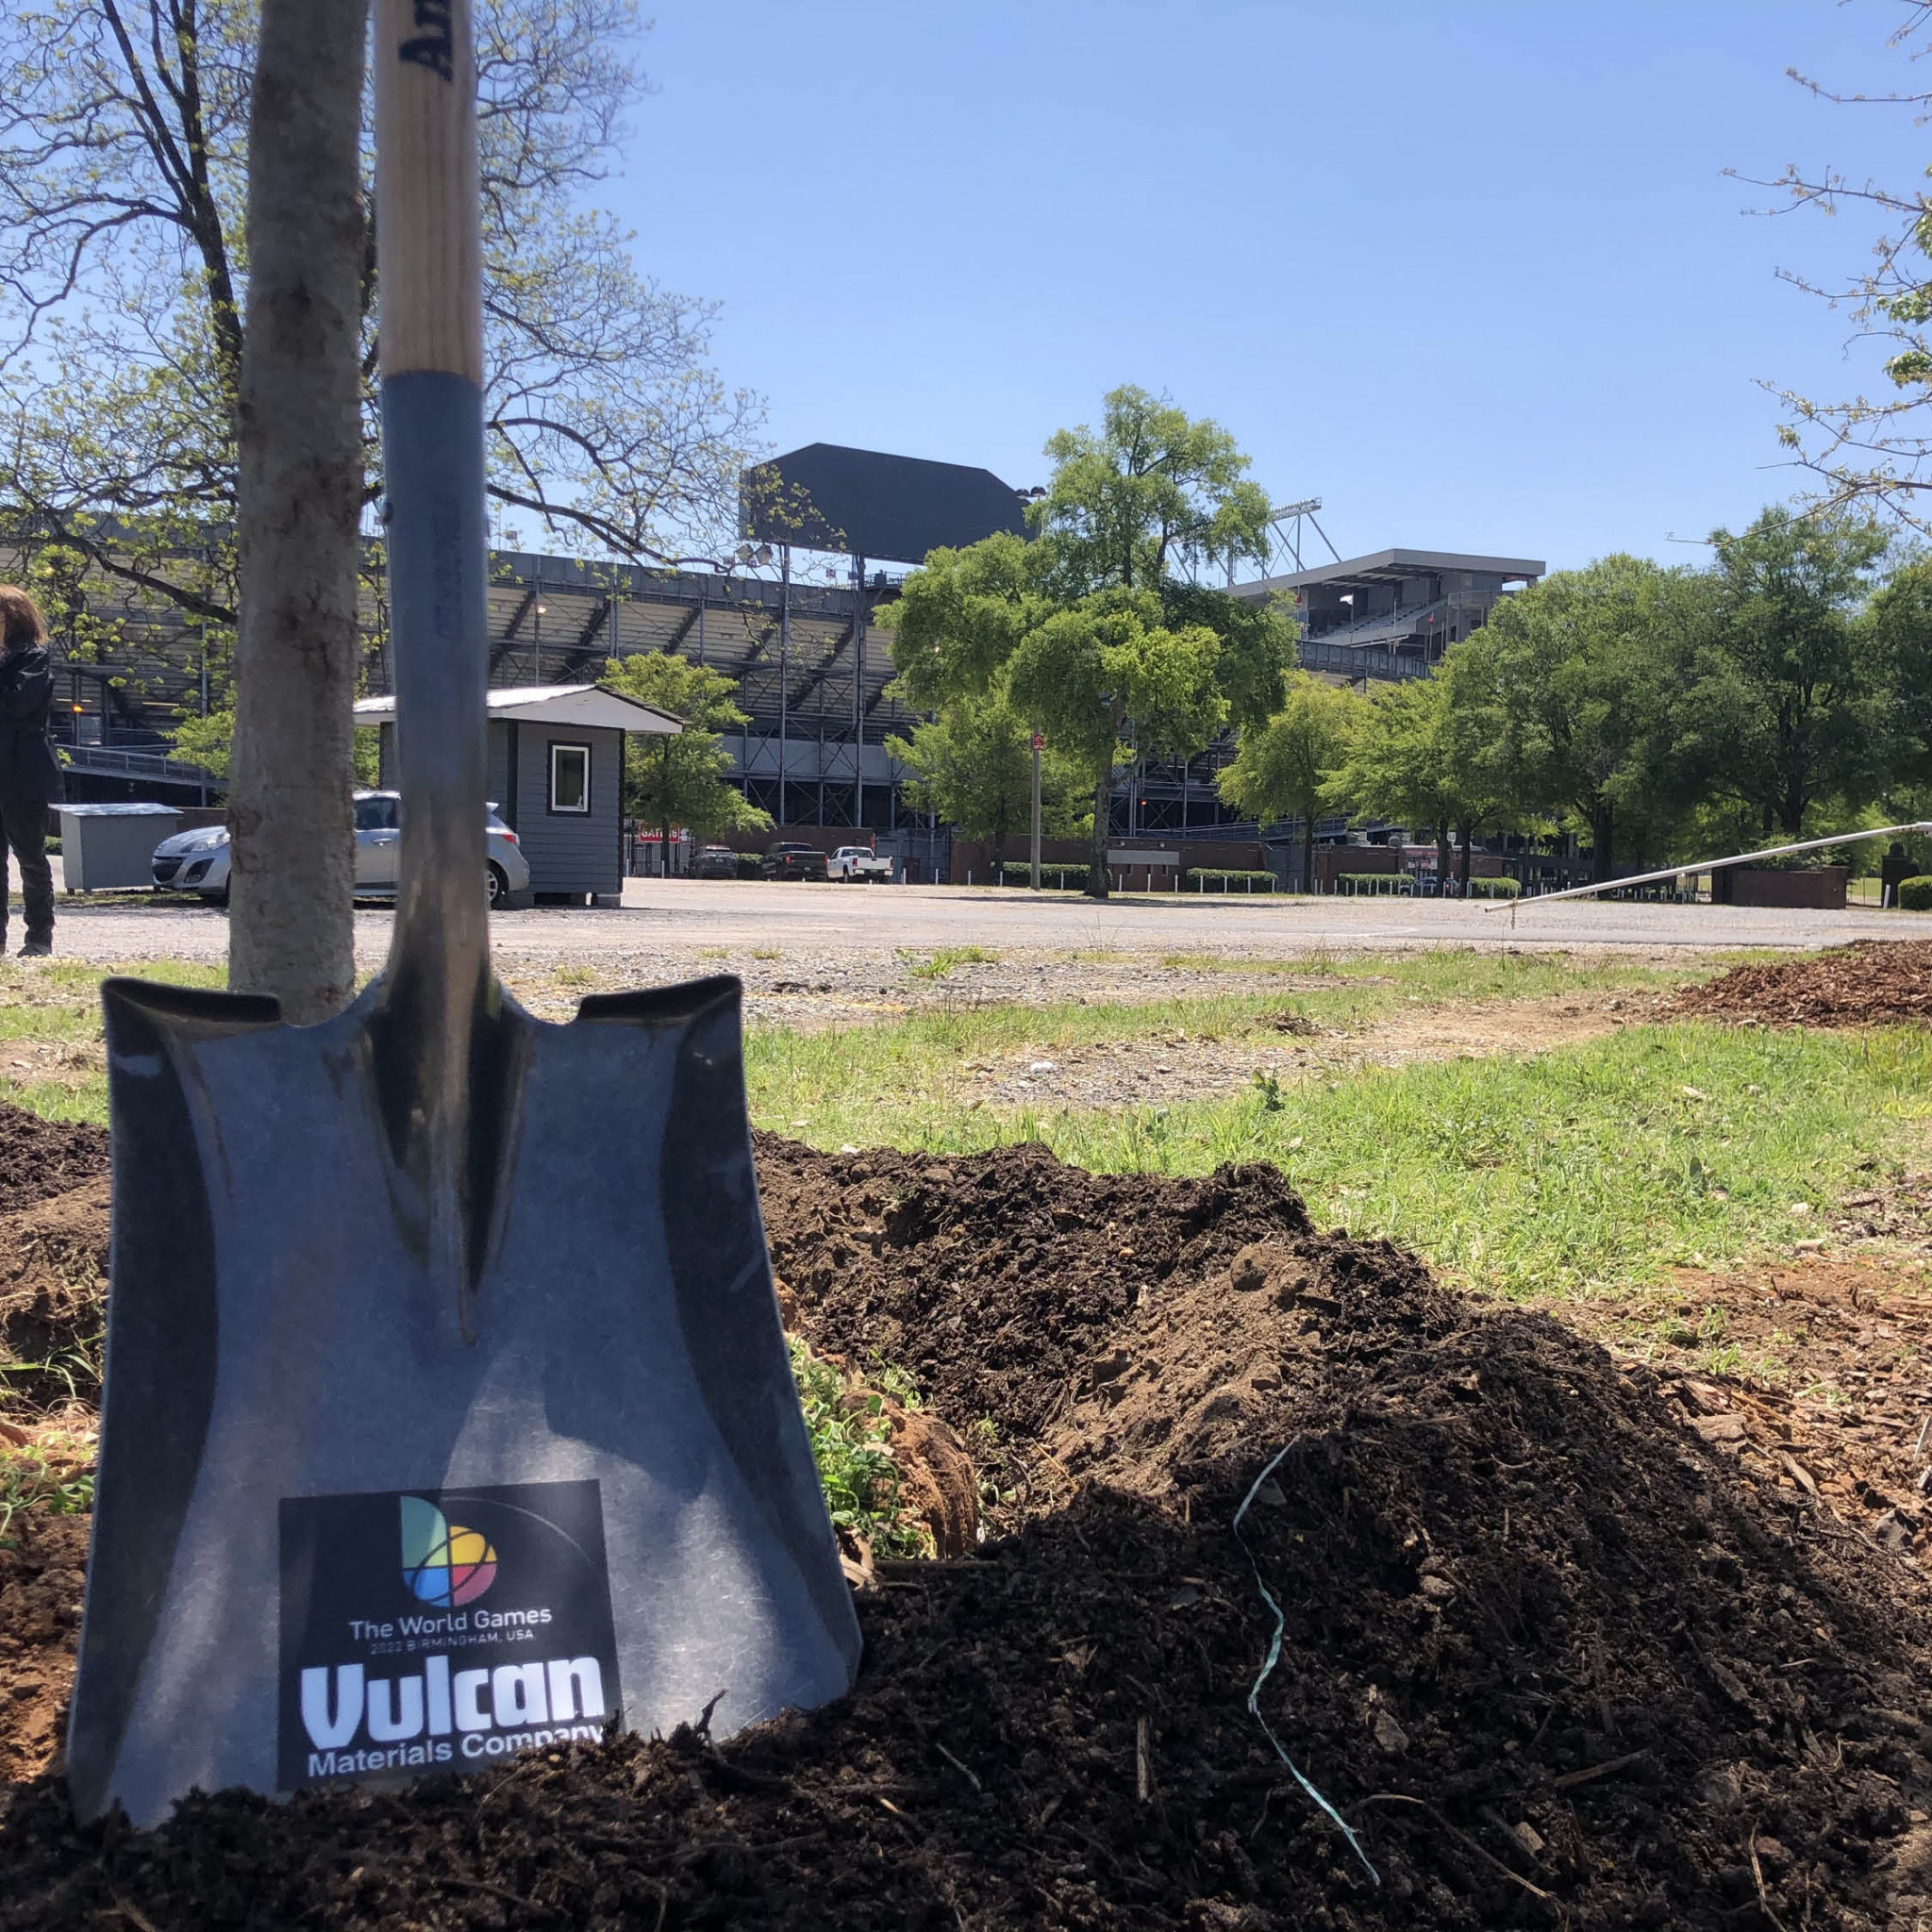 Birmingham 2022 World Games adds Vulcan Materials Company as sustainability sponsor